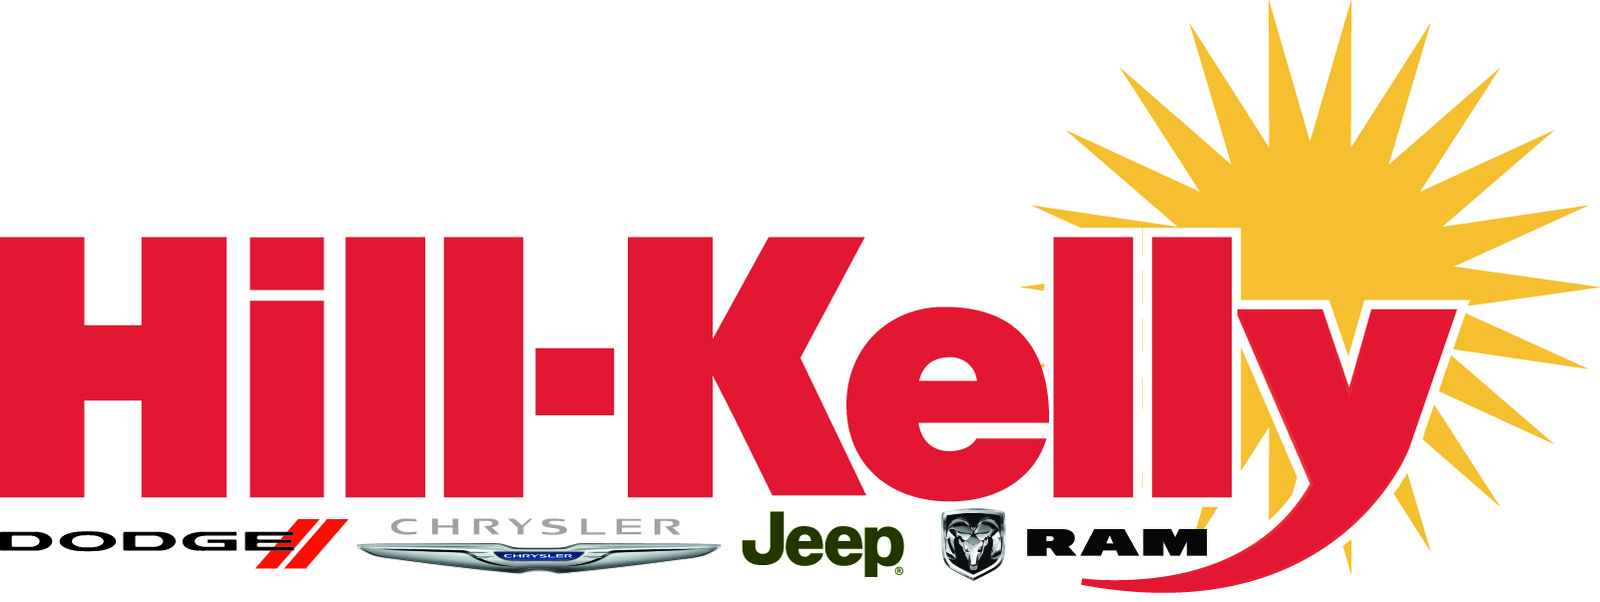 Used Cars Pensacola Fl >> Hill-Kelly Dodge Chrysler Jeep Ram - Pensacola, FL: Read Consumer reviews, Browse Used and New ...